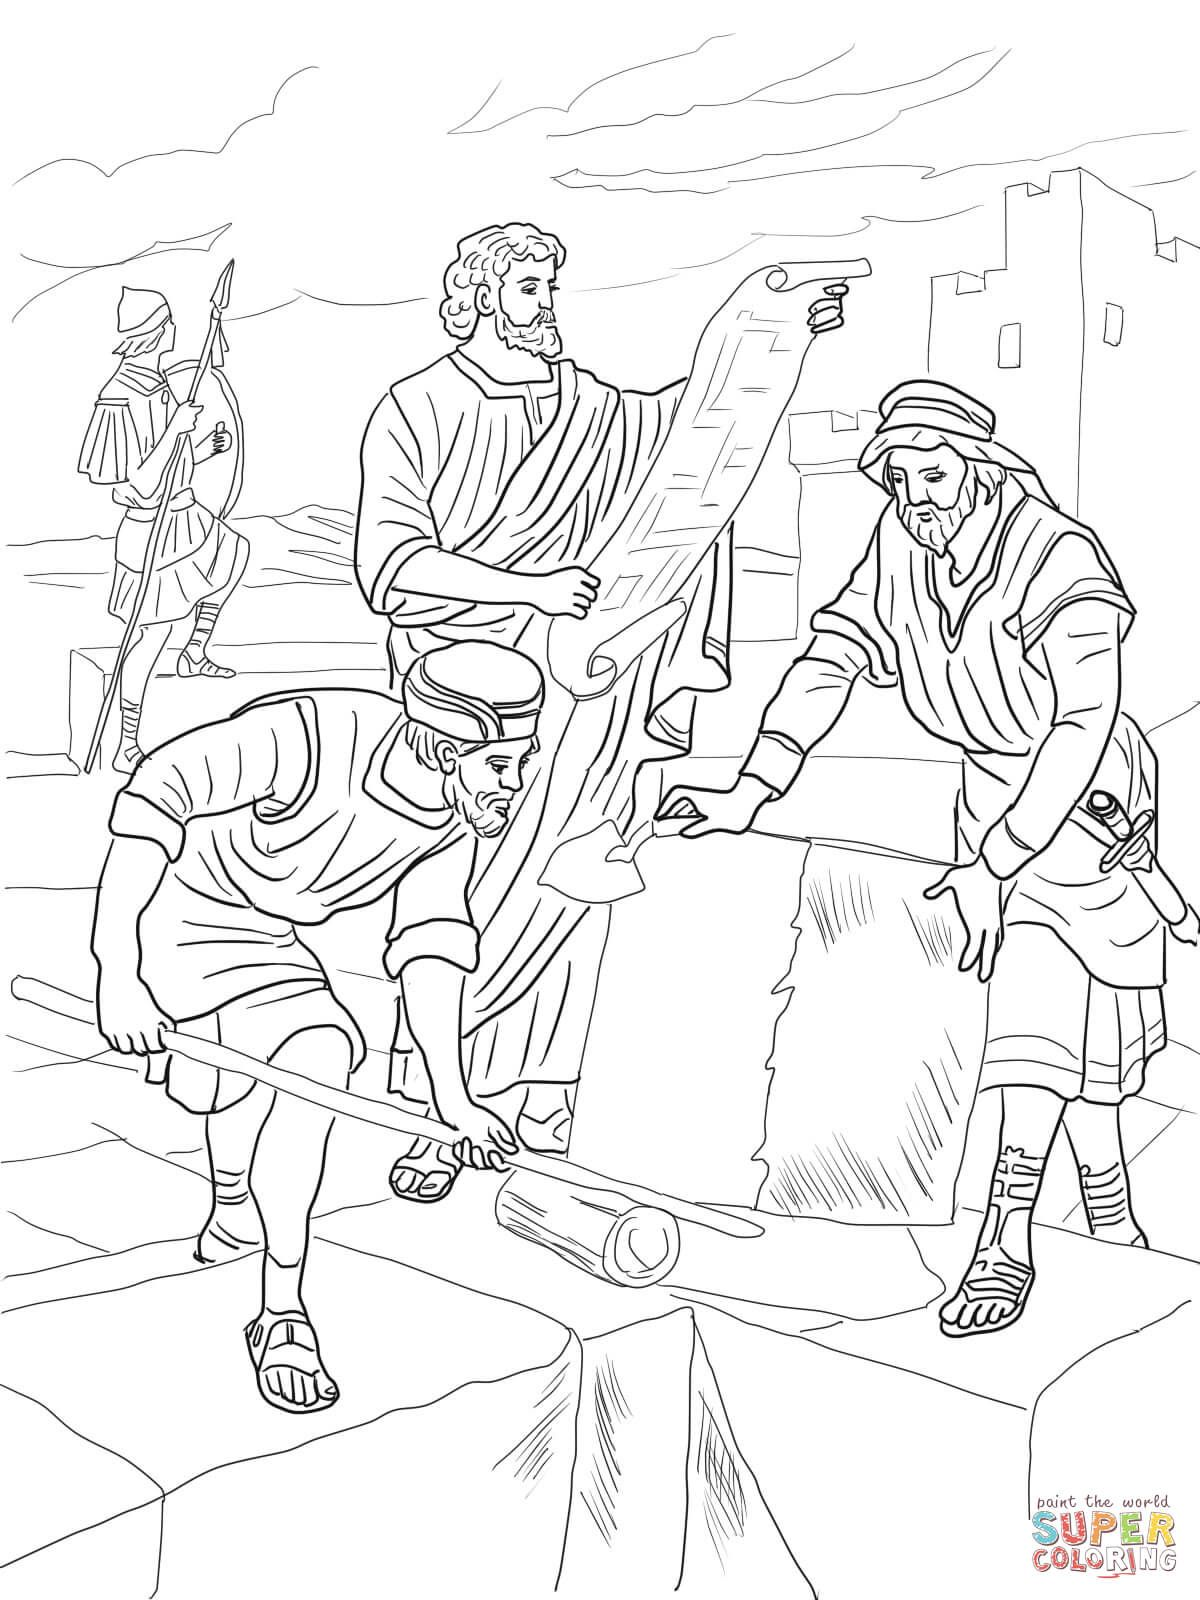 Coloring Pages For Nehemiah : Nehemiah rebuilding the walls of jerusalem coloring page